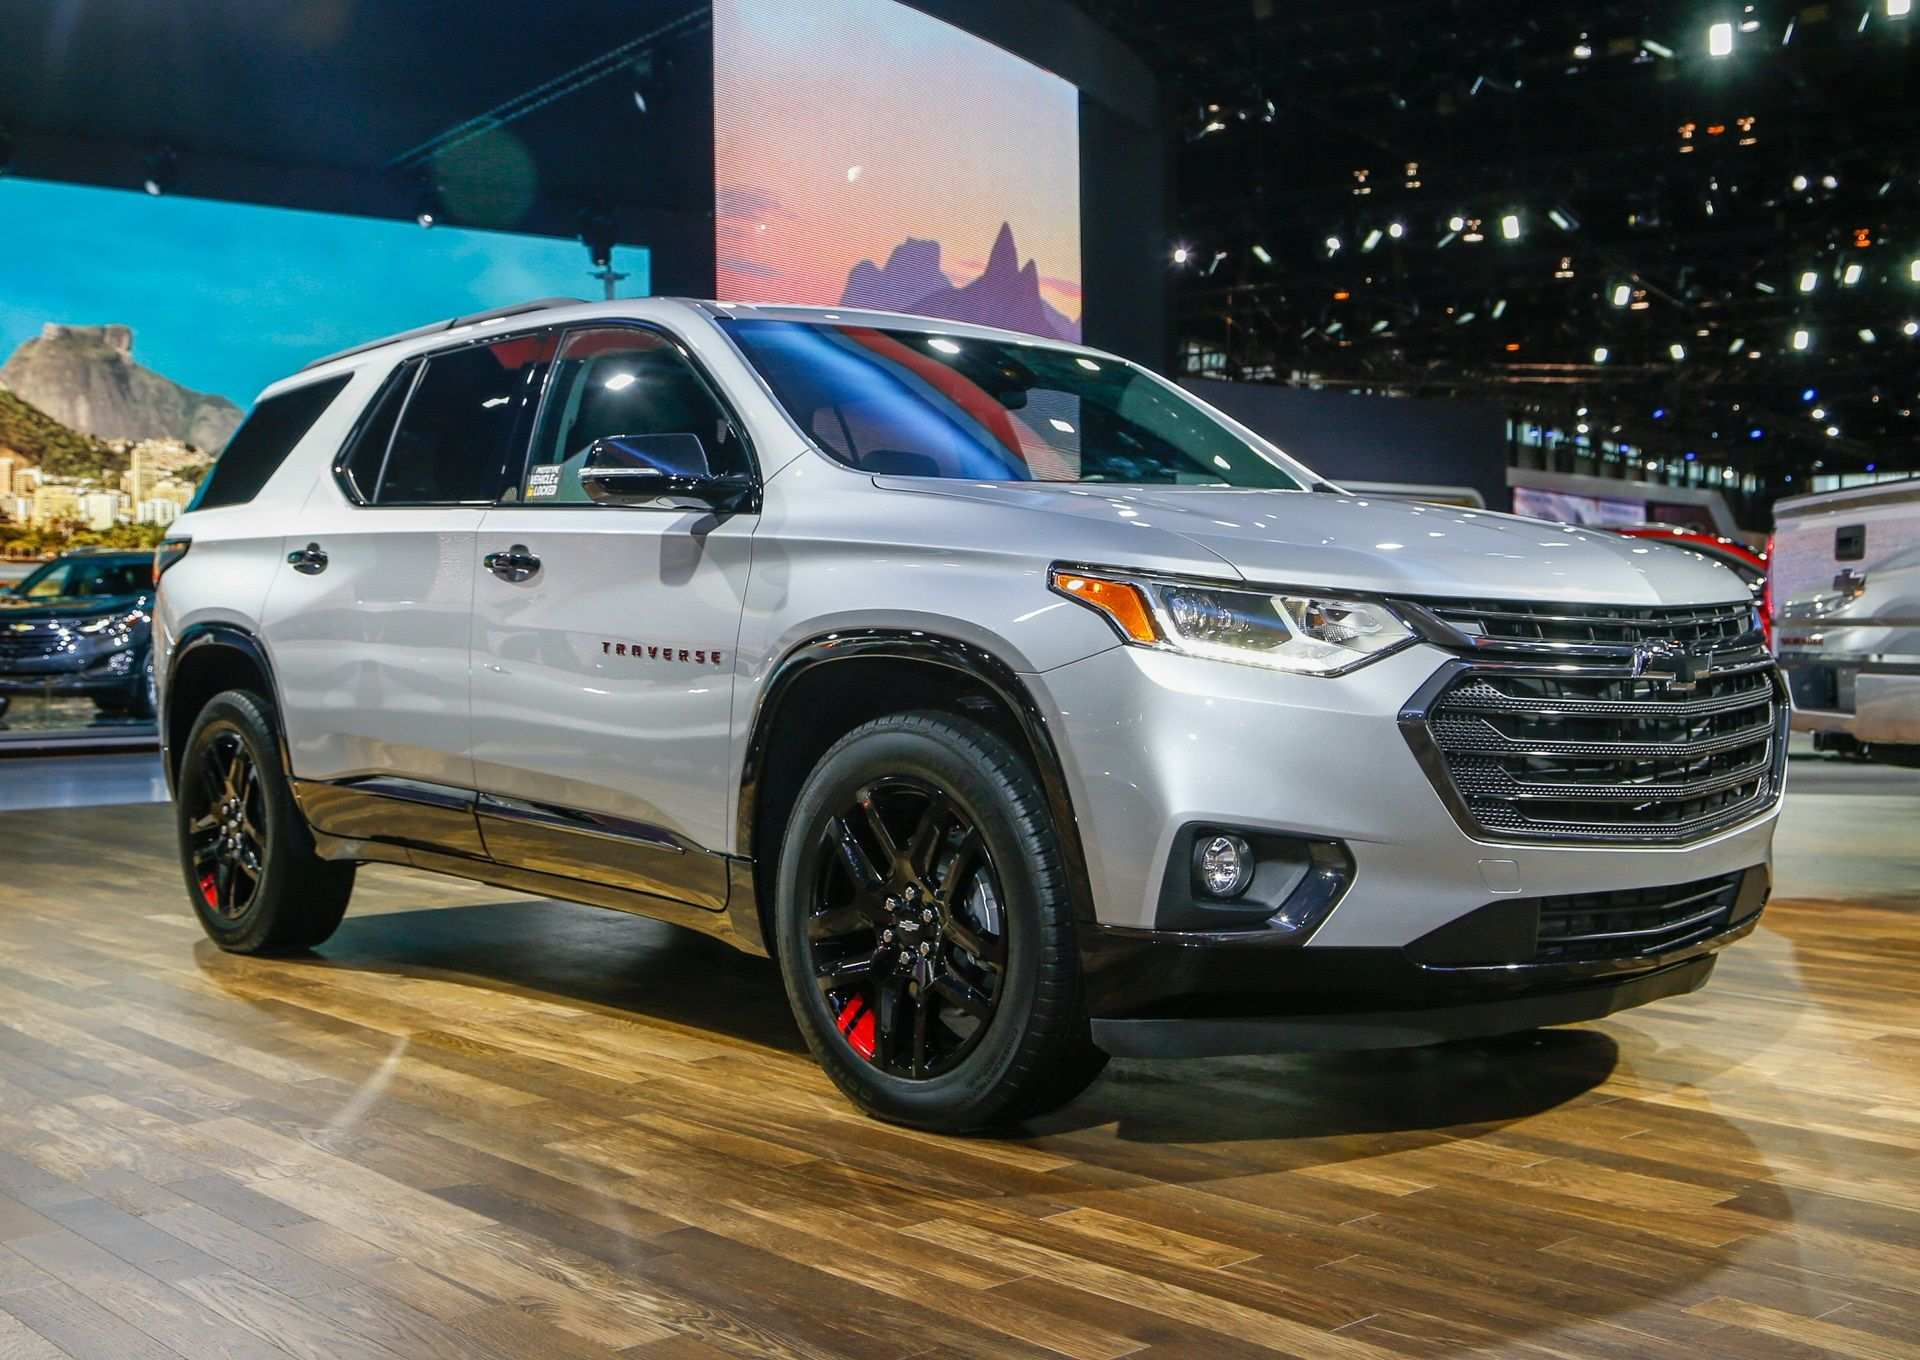 66 Best Chevrolet Traverse 2020 Price